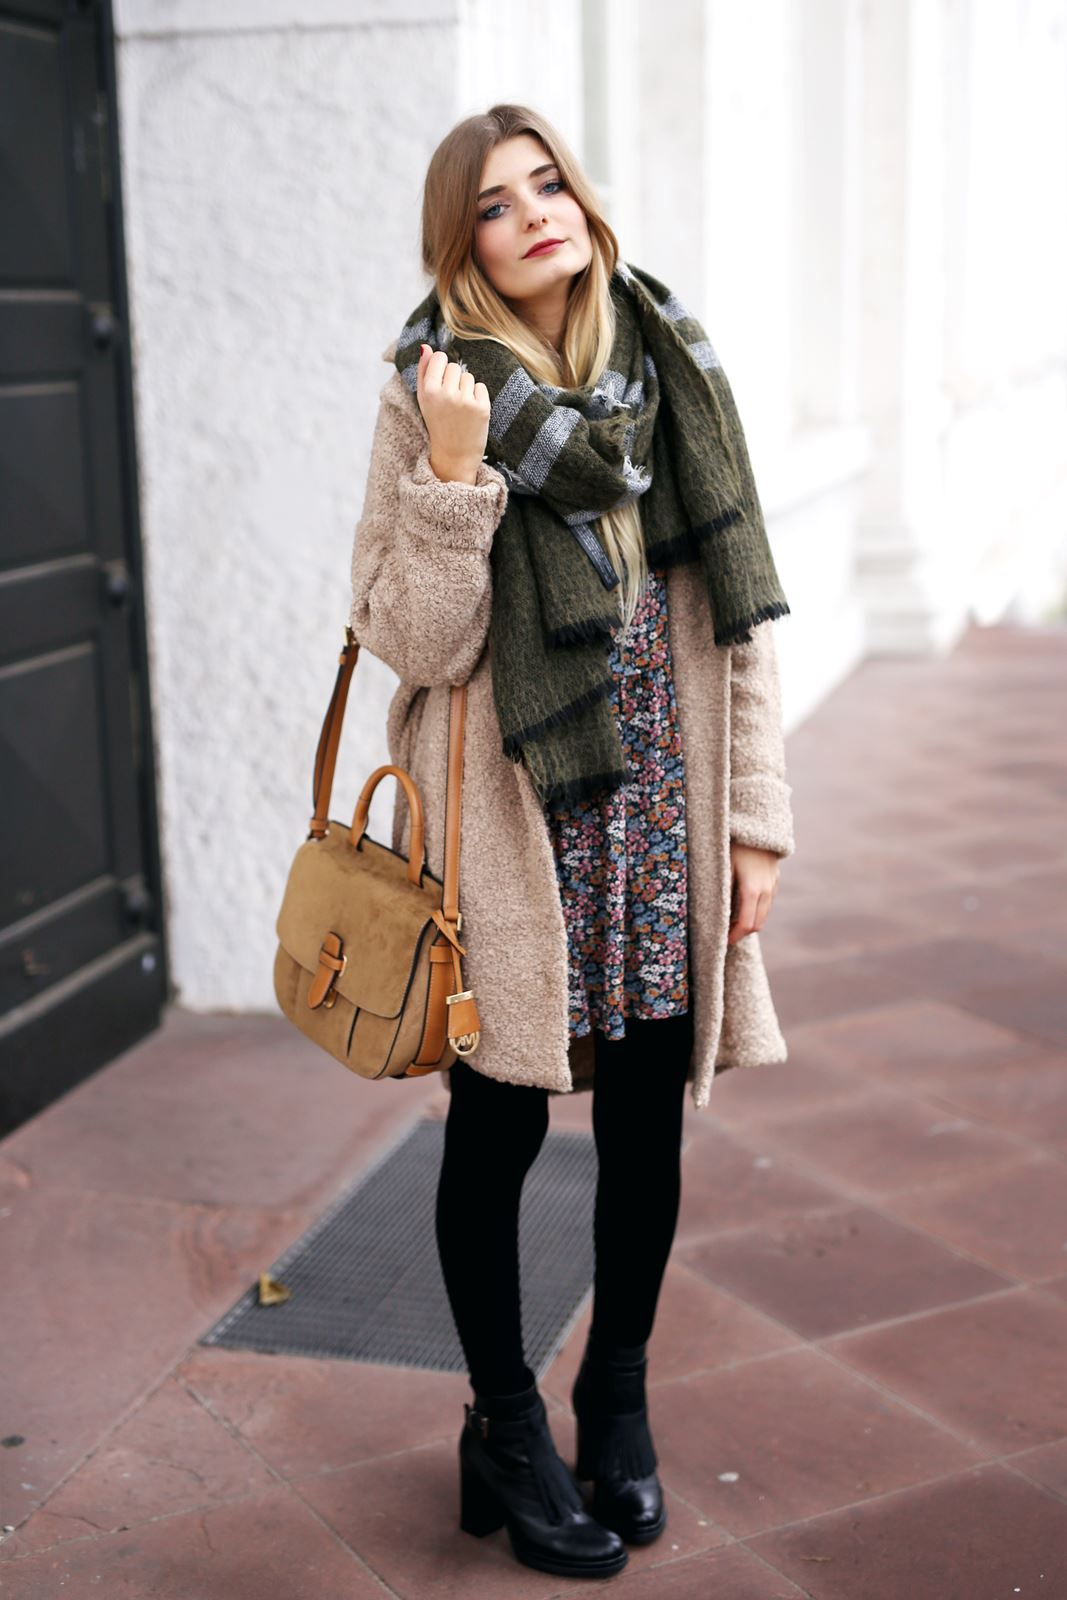 modeblog-fashion-blog-outfit-herbst-mantel-michael-kors-tasche-2